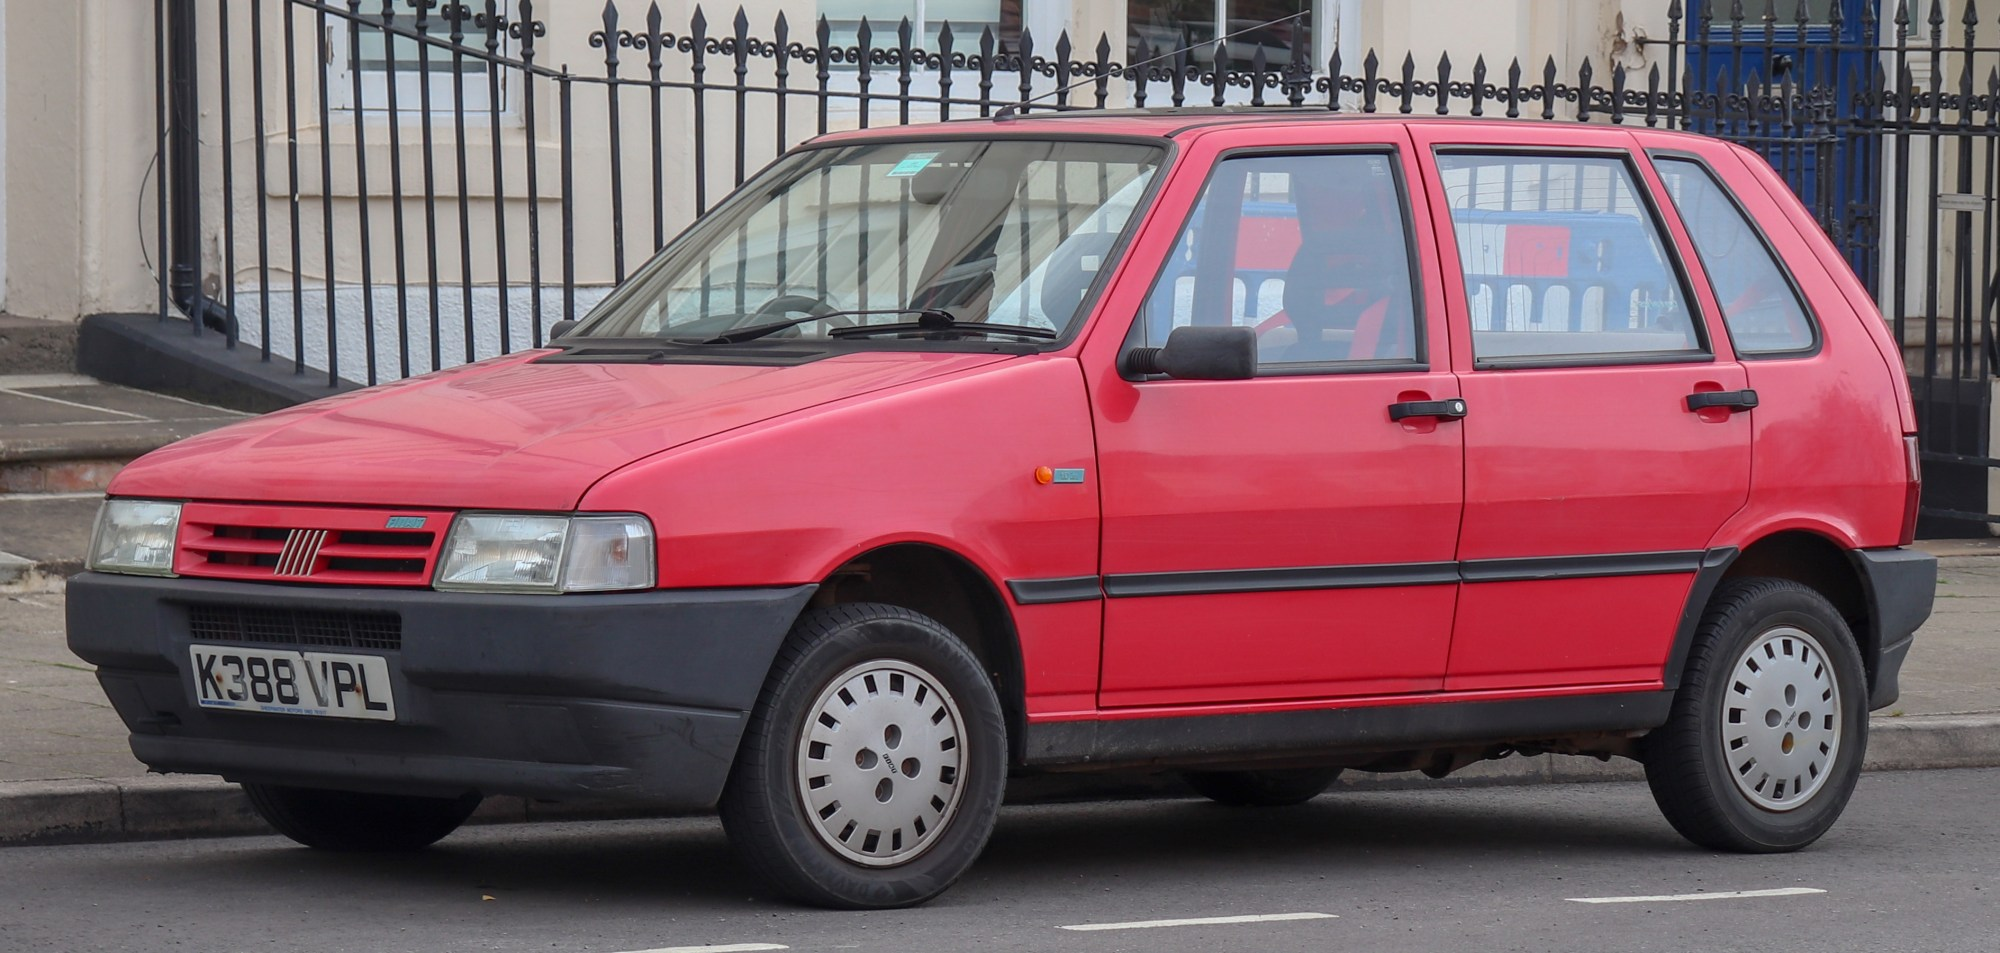 hight resolution of file 1992 fiat uno ie 1 0 front jpg